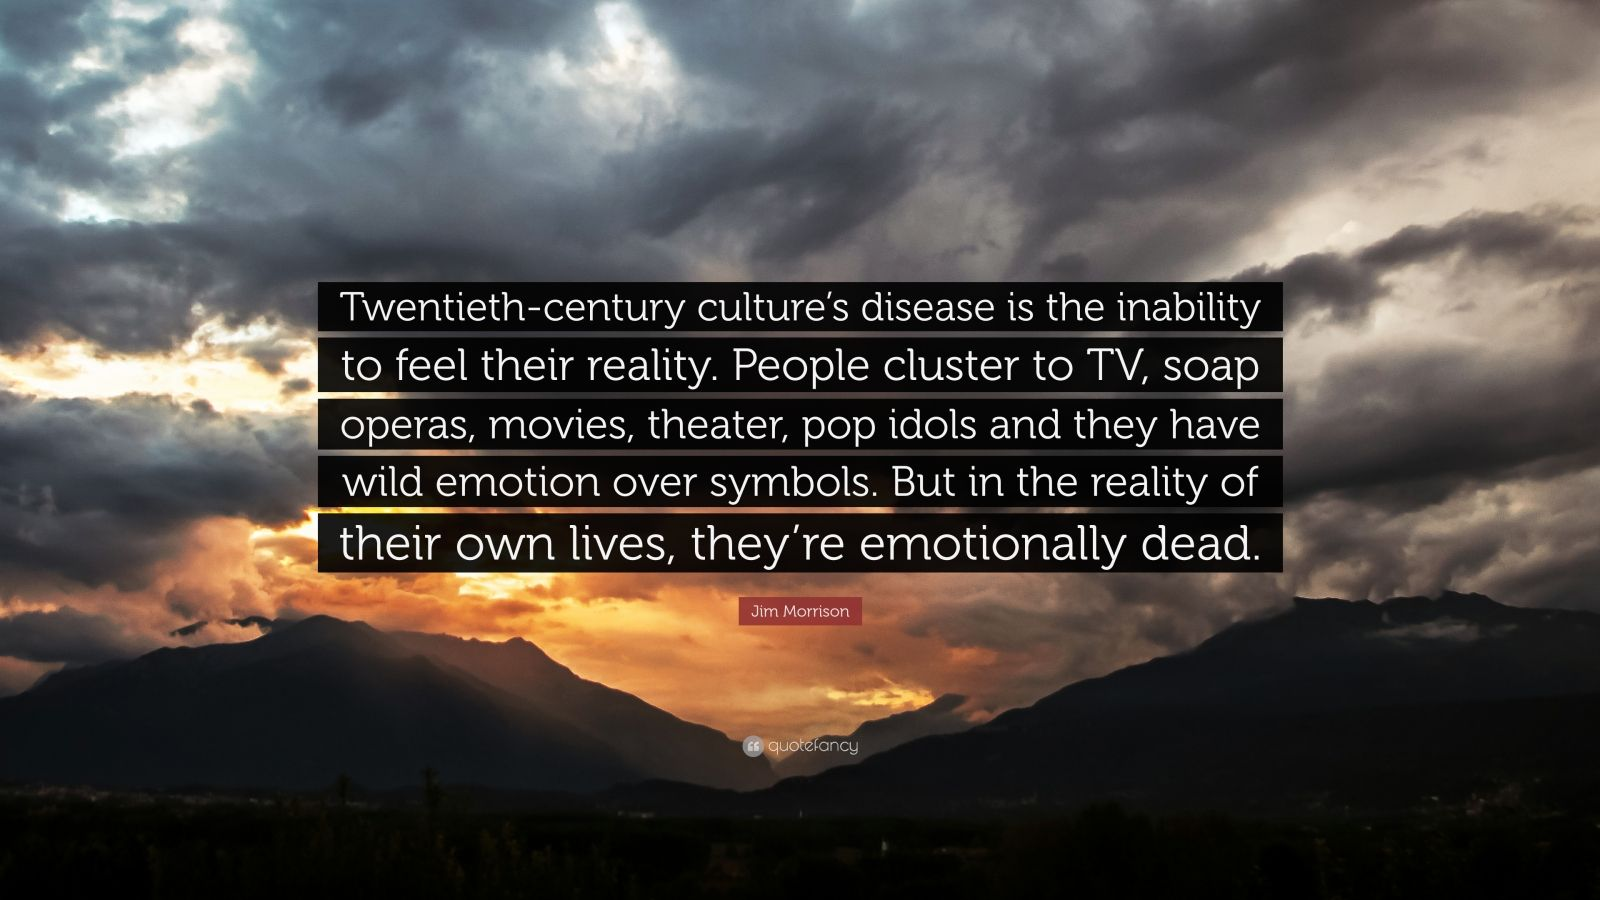 """Jim Morrison Quote: """"Twentieth-century culture's disease is the inability to feel their reality. People cluster to TV, soap operas, movies, theater, pop idols and they have wild emotion over symbols. But in the reality of their own lives, they're emotionally dead."""""""